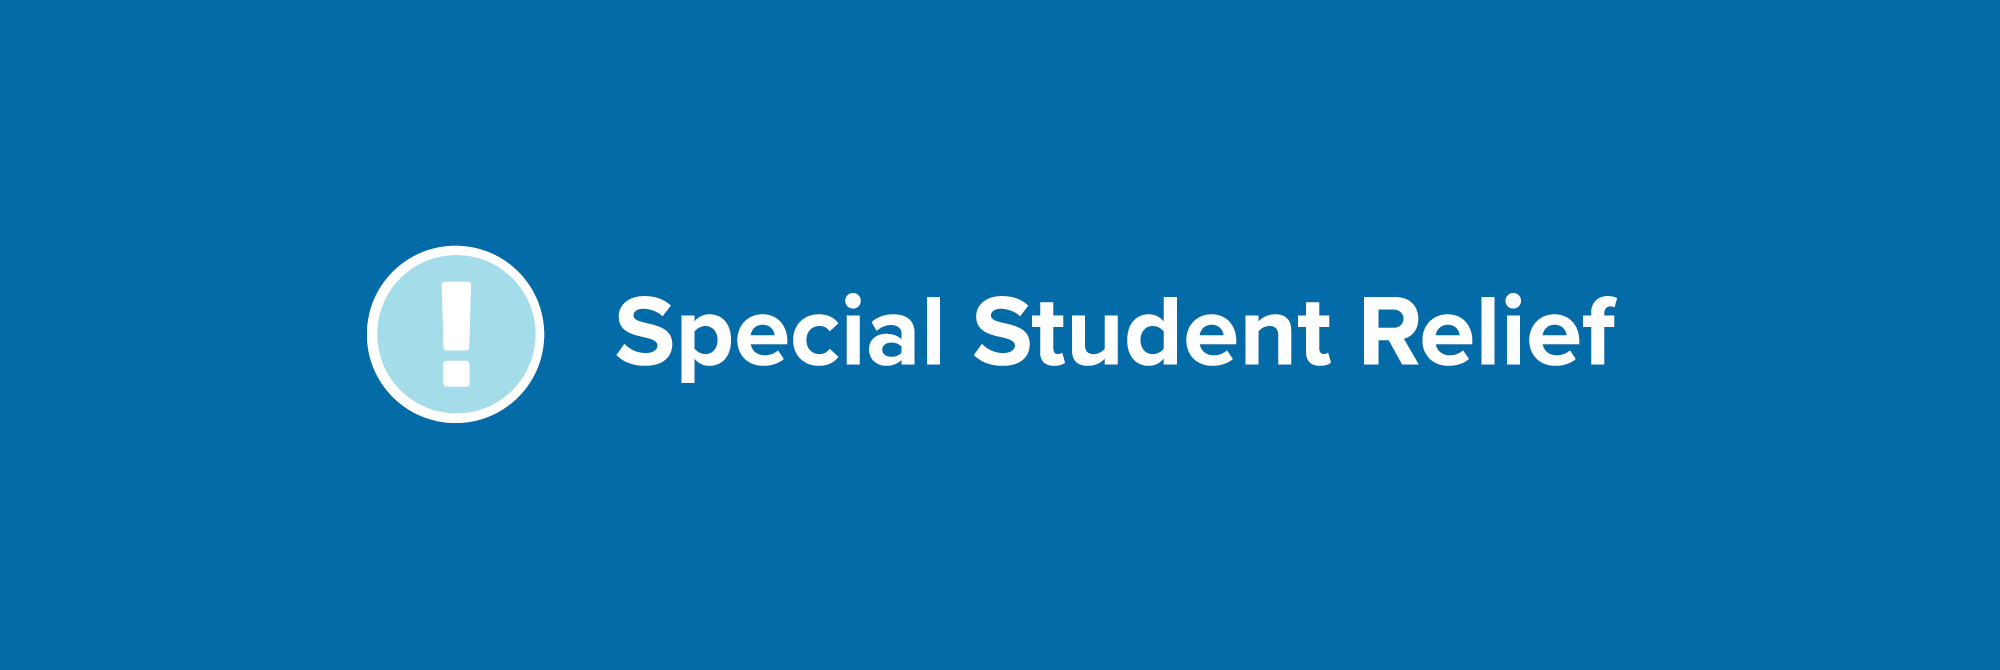 special student relief